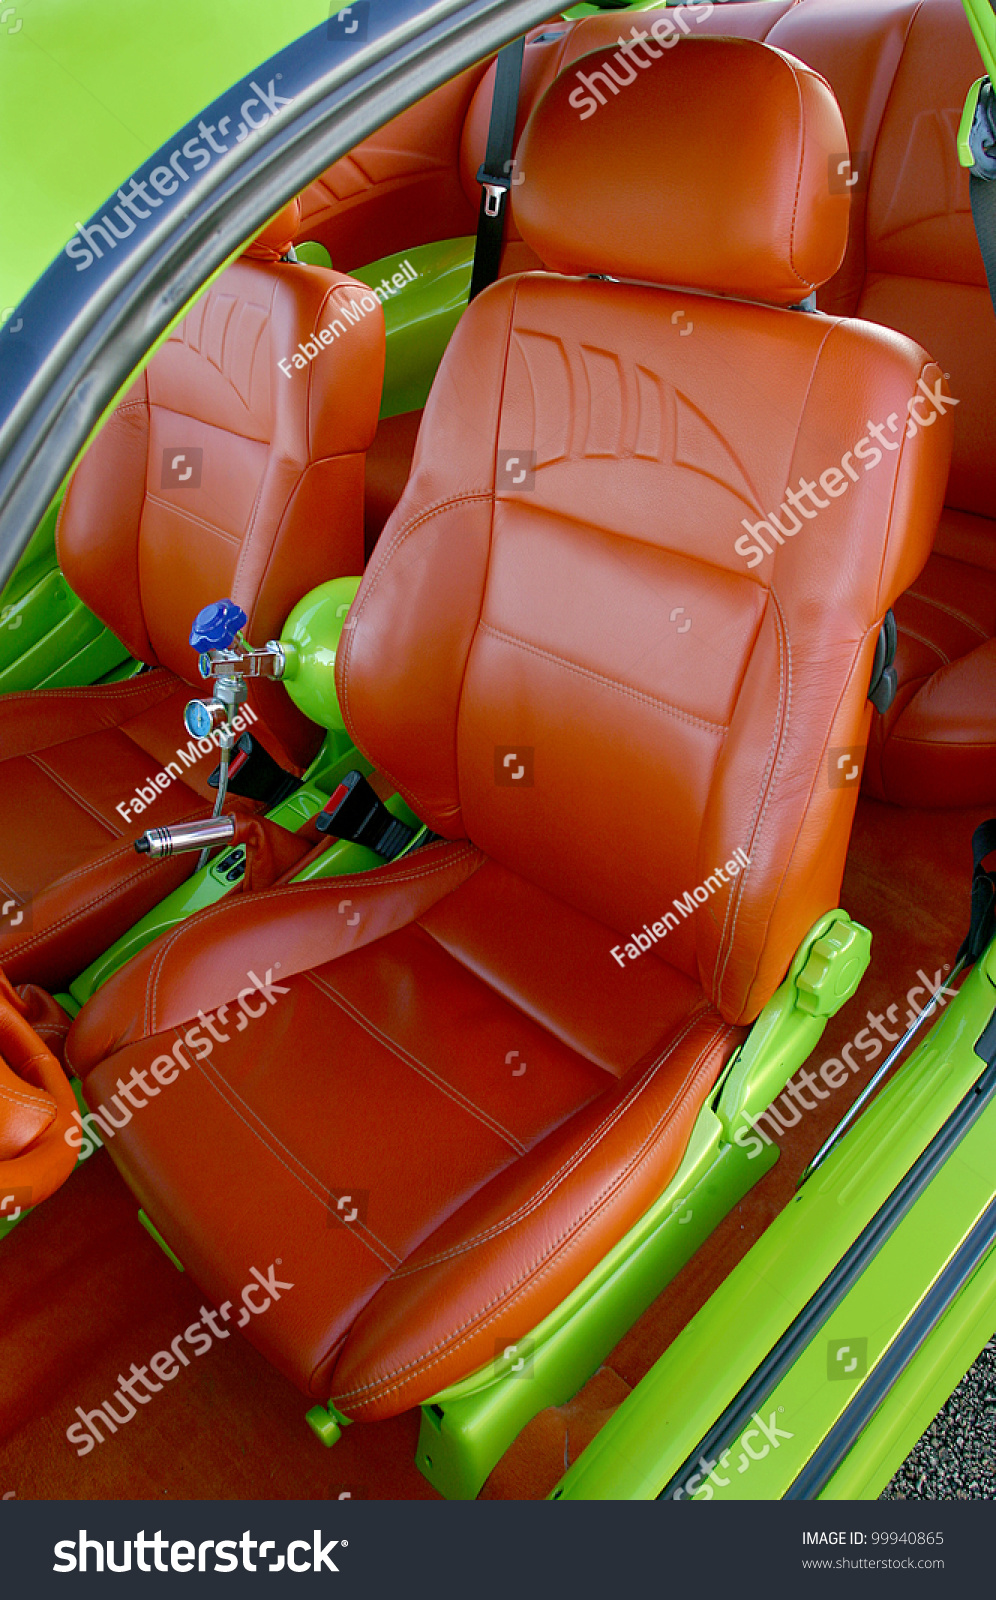 customized interior car orange leather seats stock photo 99940865 shutterstock. Black Bedroom Furniture Sets. Home Design Ideas